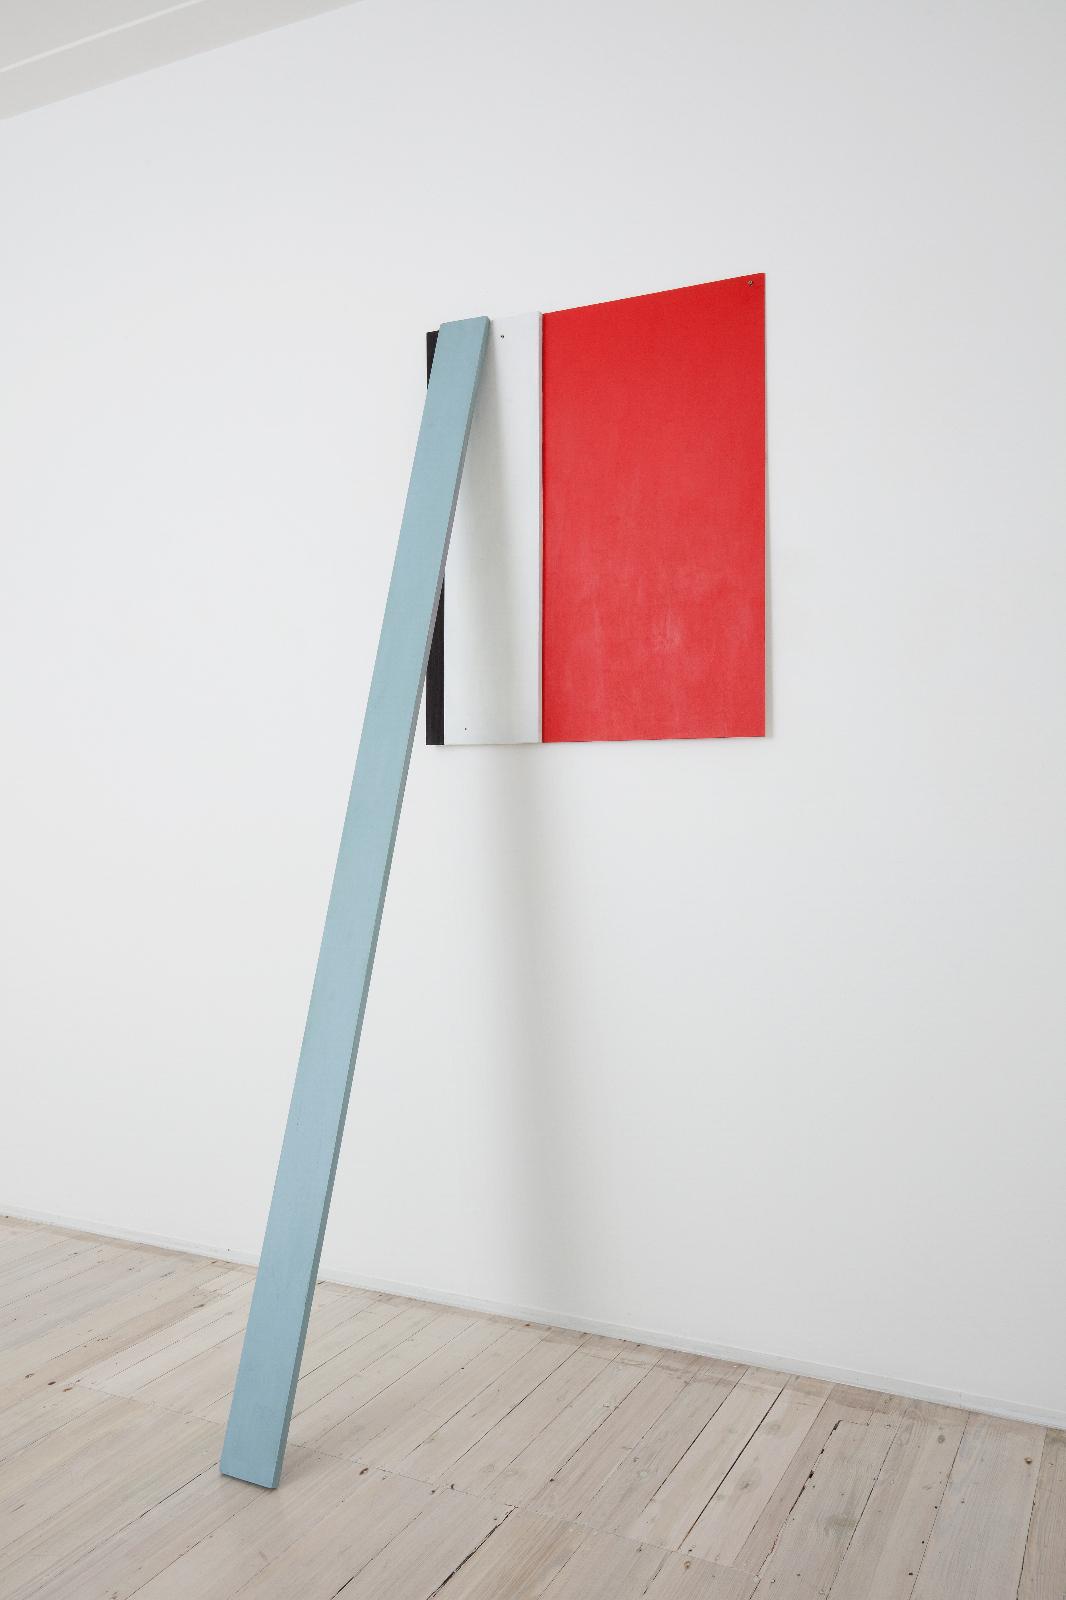 SIMON BLAU  Prop for Red  2011 acrylic on mdf and timber 239 × 81 cm